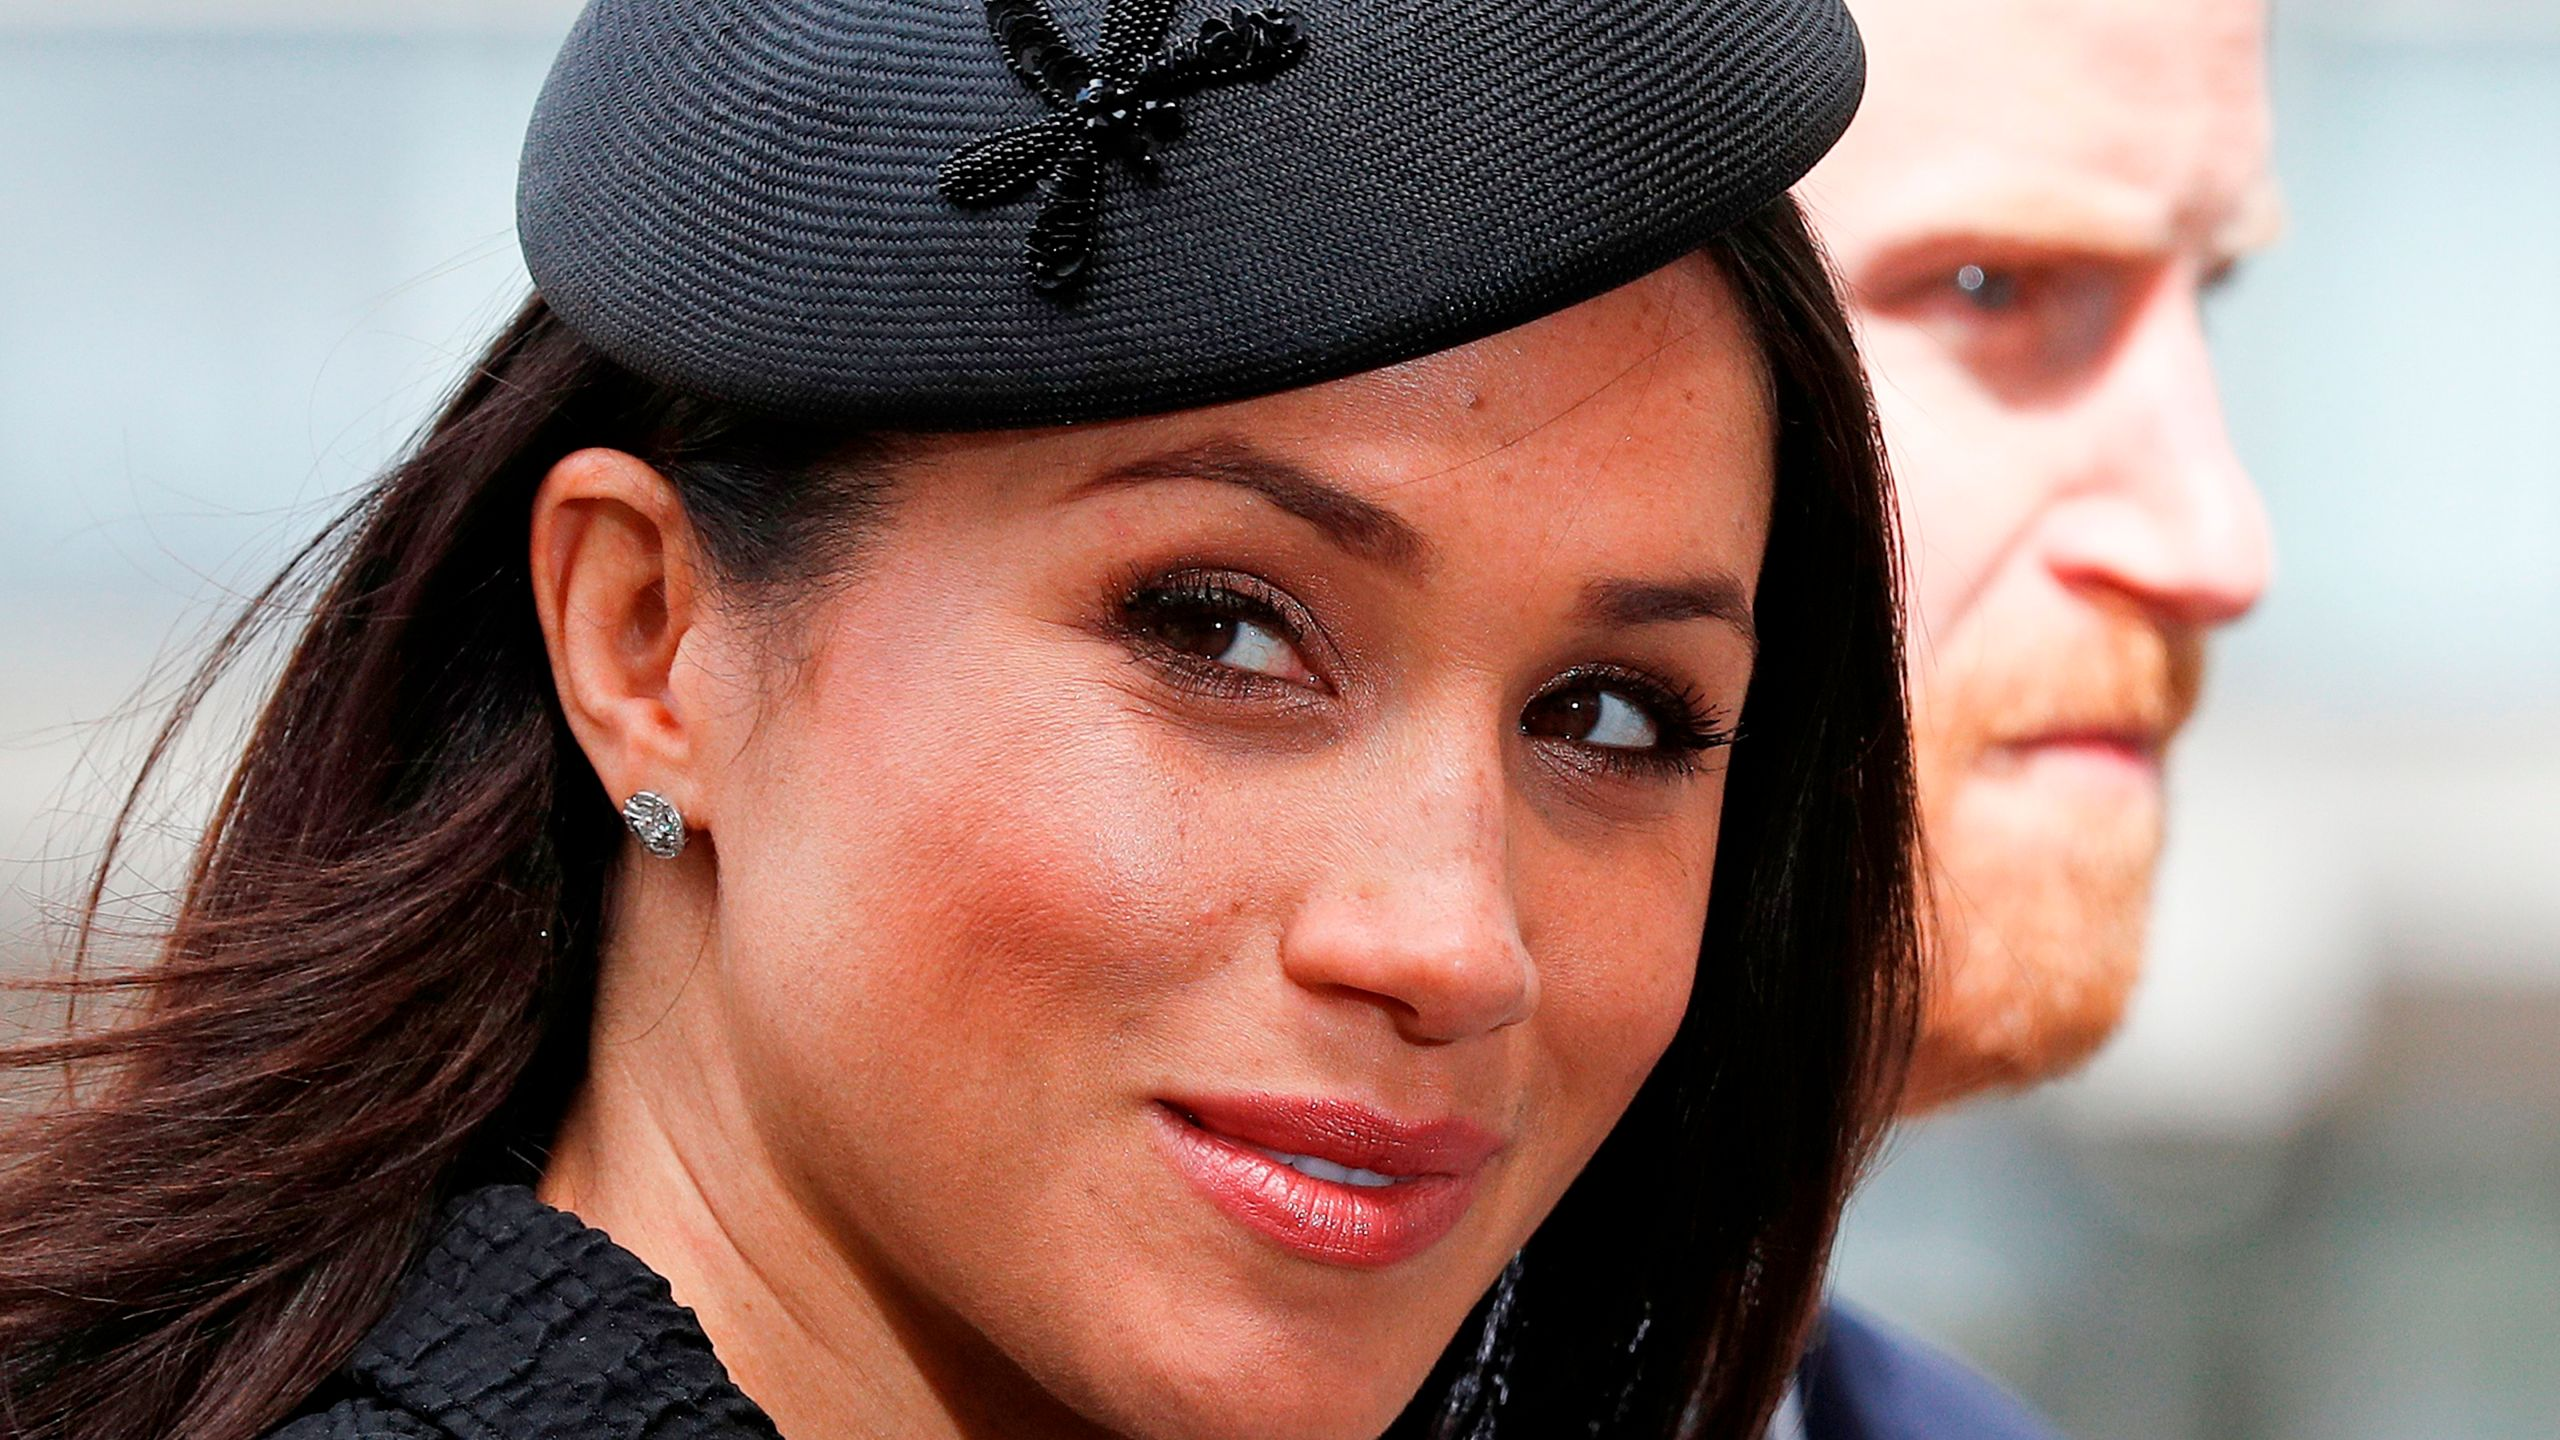 Meghan Markle arrives with her fiance Prince Harry to attend a service of commemoration on Anzac Day in Westminster Abbey in London on April 25, 2018. (Credit: Adrian Dennis / AFP / Getty Images)